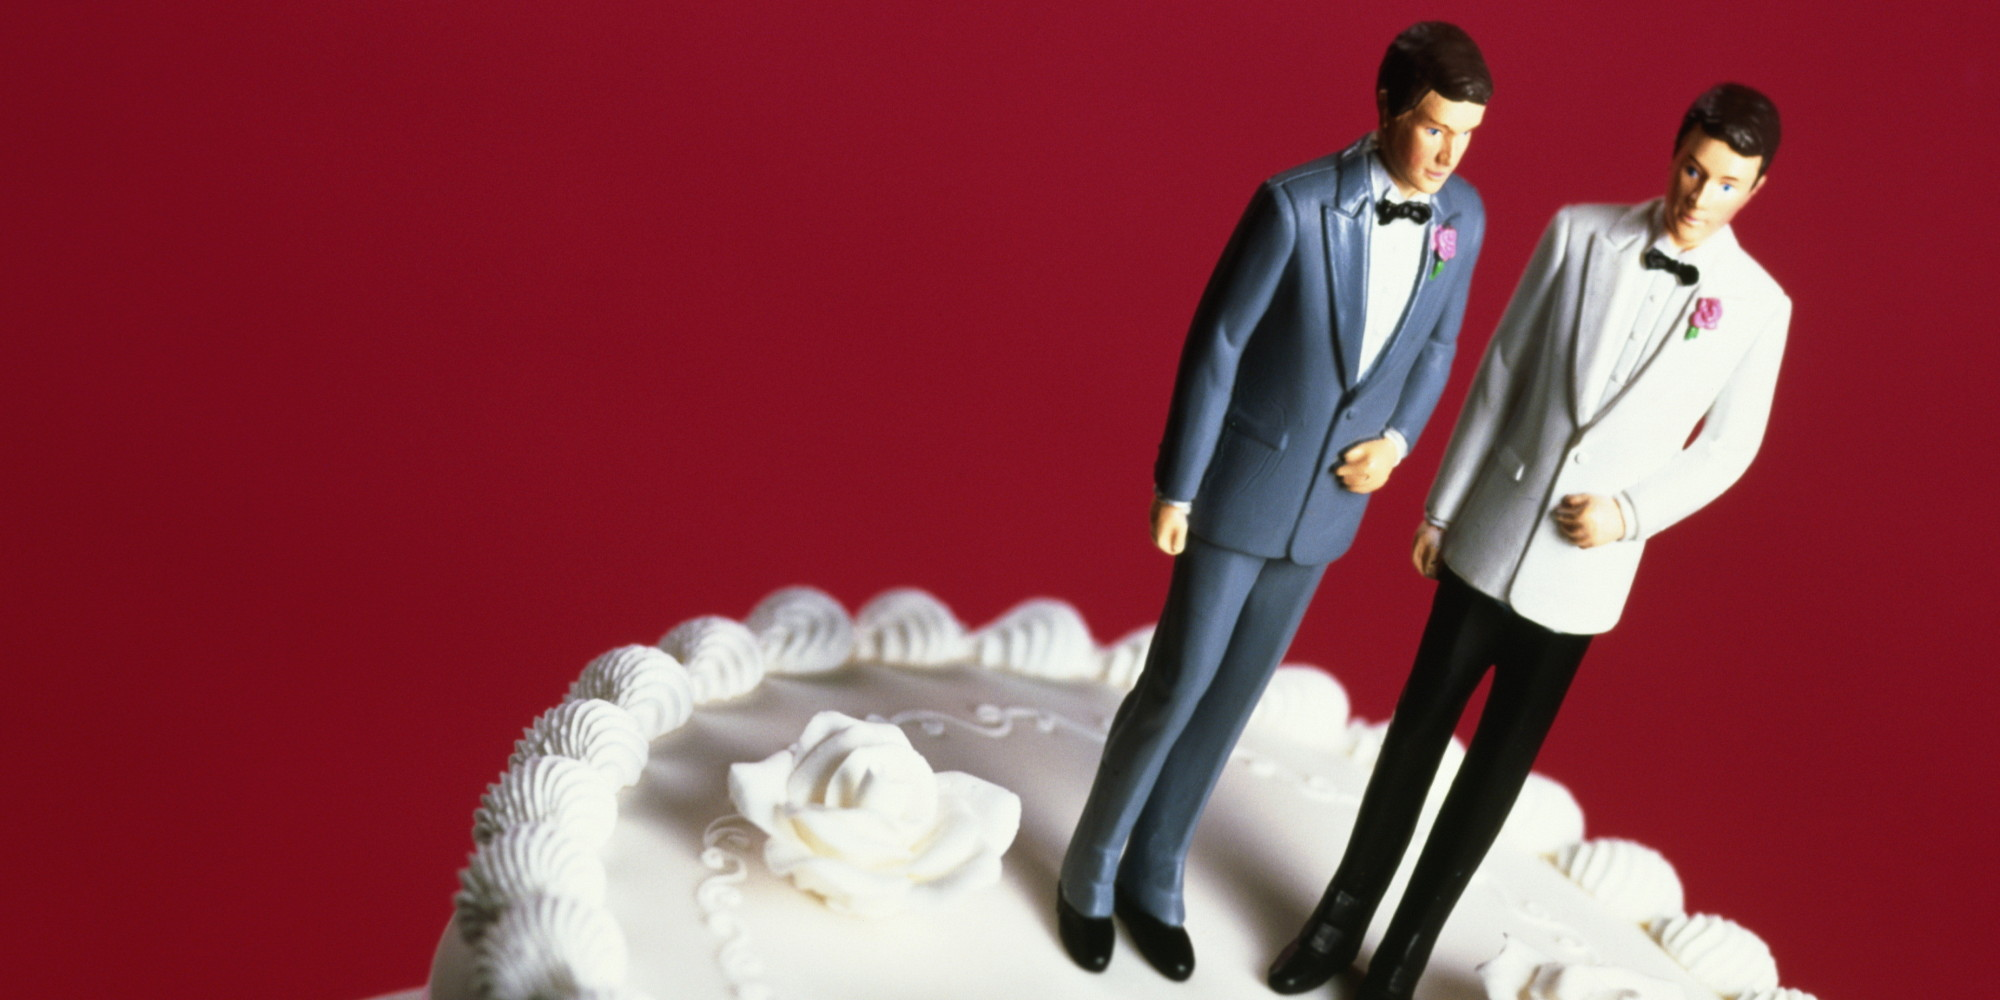 gay marriage images